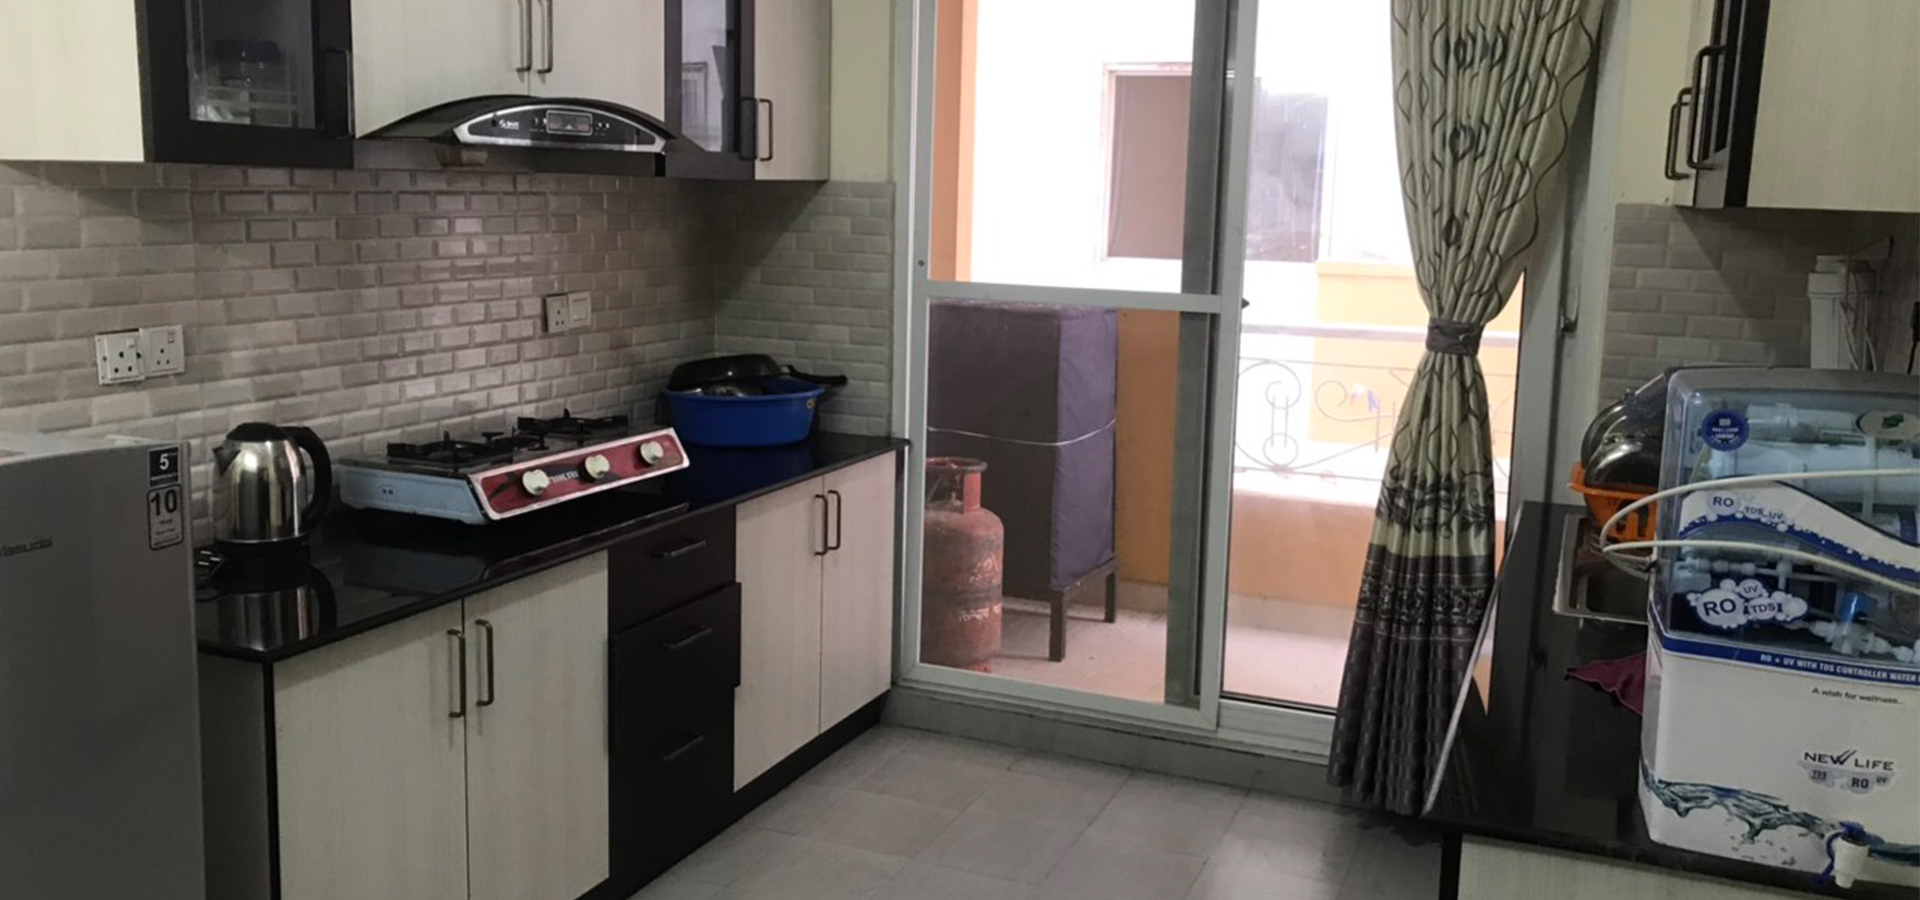 Westar_web1-kitchen